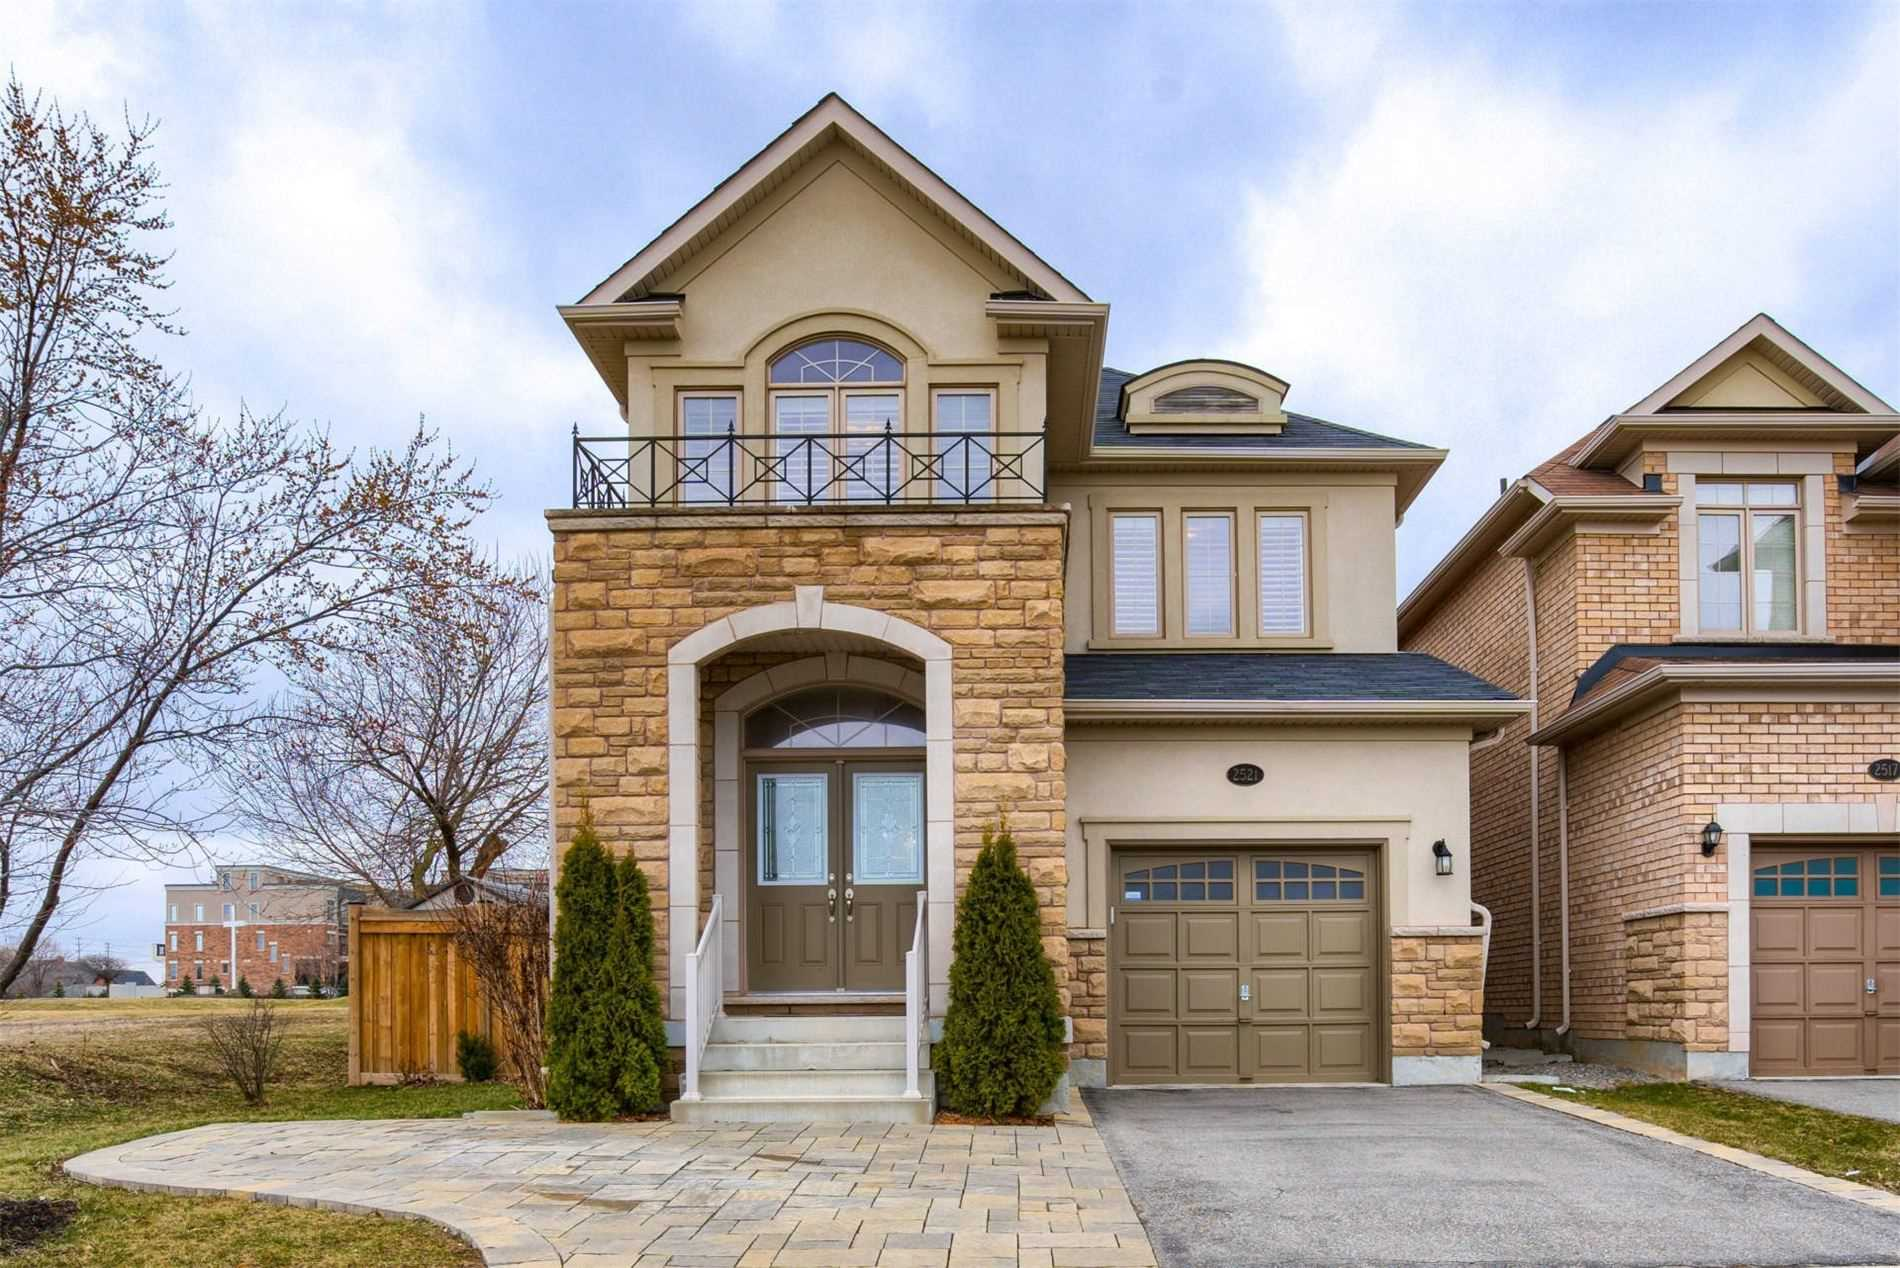 For Sale: 2521 Pine Glen Road, Oakville, ON | 4 Bed, 4 Bath House for $1148000.00. See 36 photos!